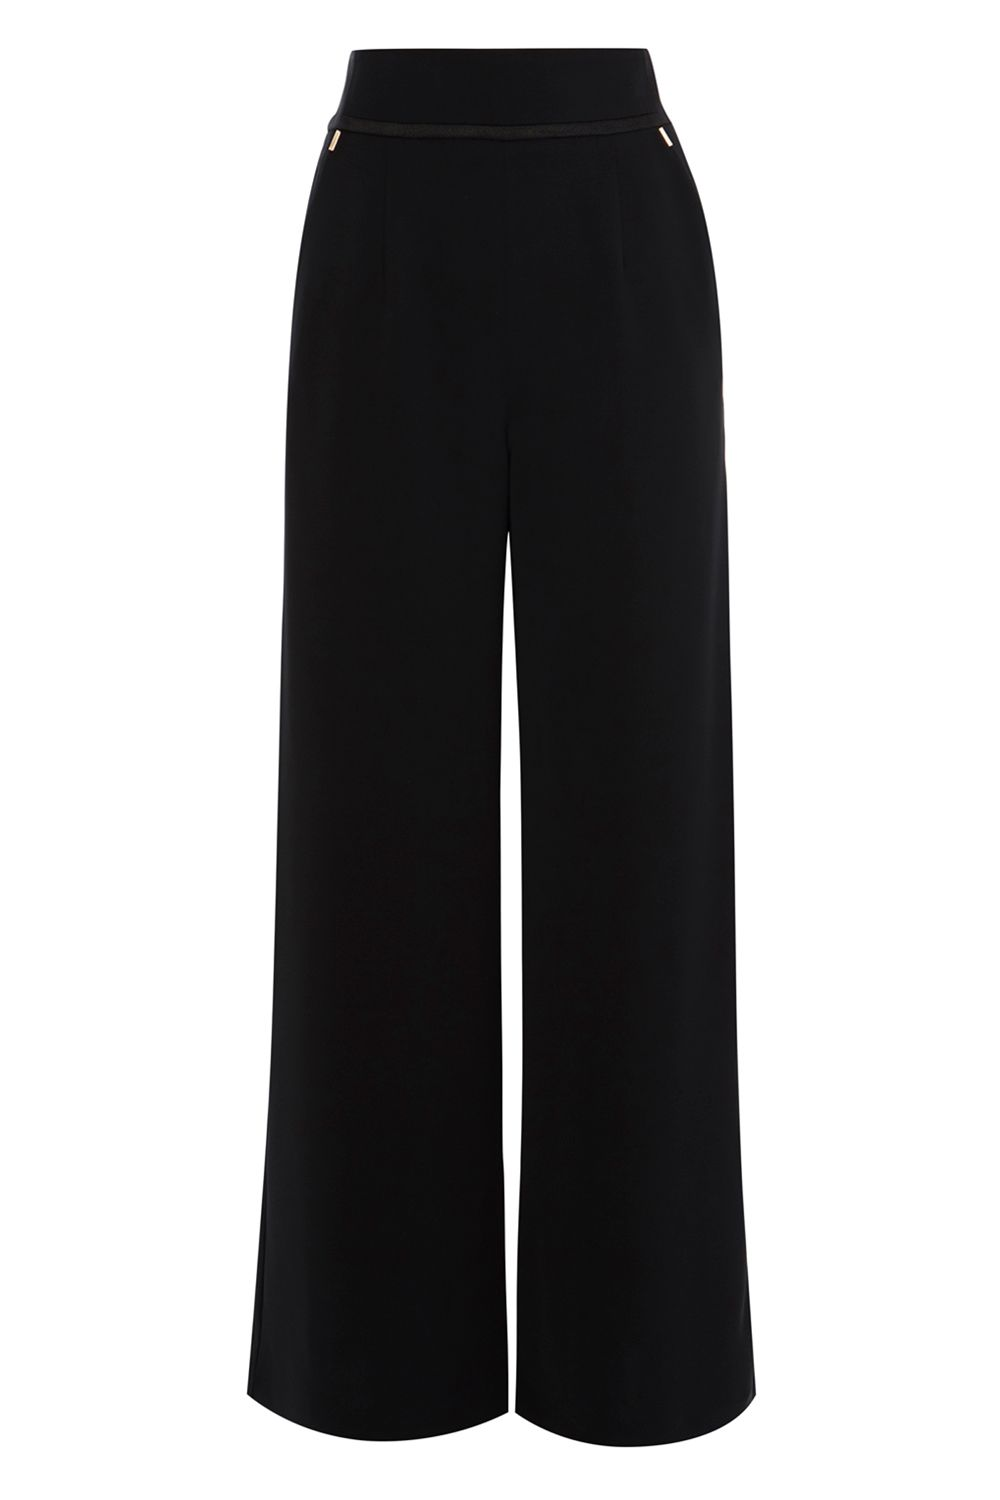 Coast Valencia Wideleg Trouser, Black